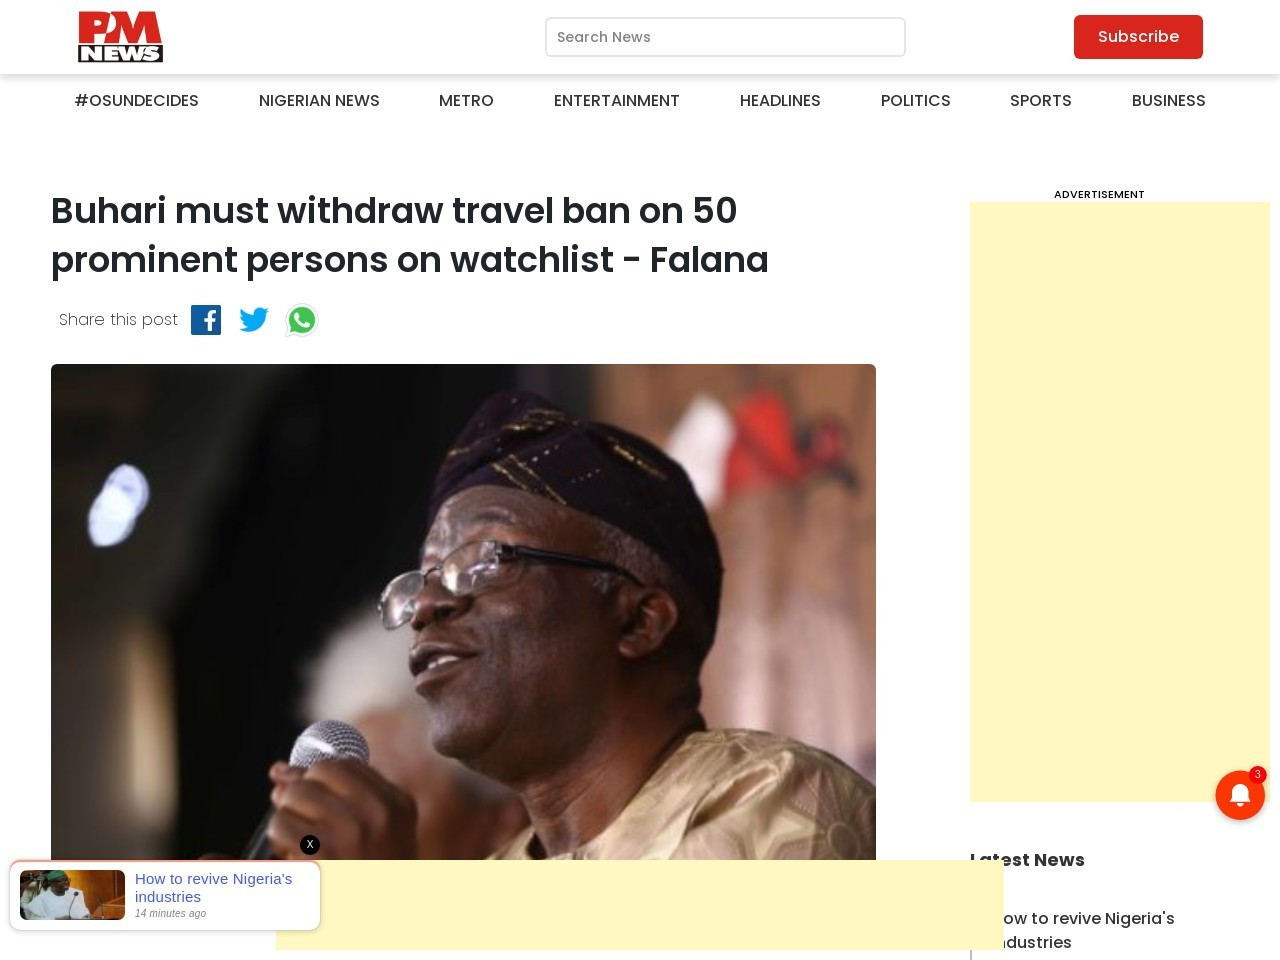 Buhari must withdraw travel ban on 50 prominent persons on watchlist – Falana